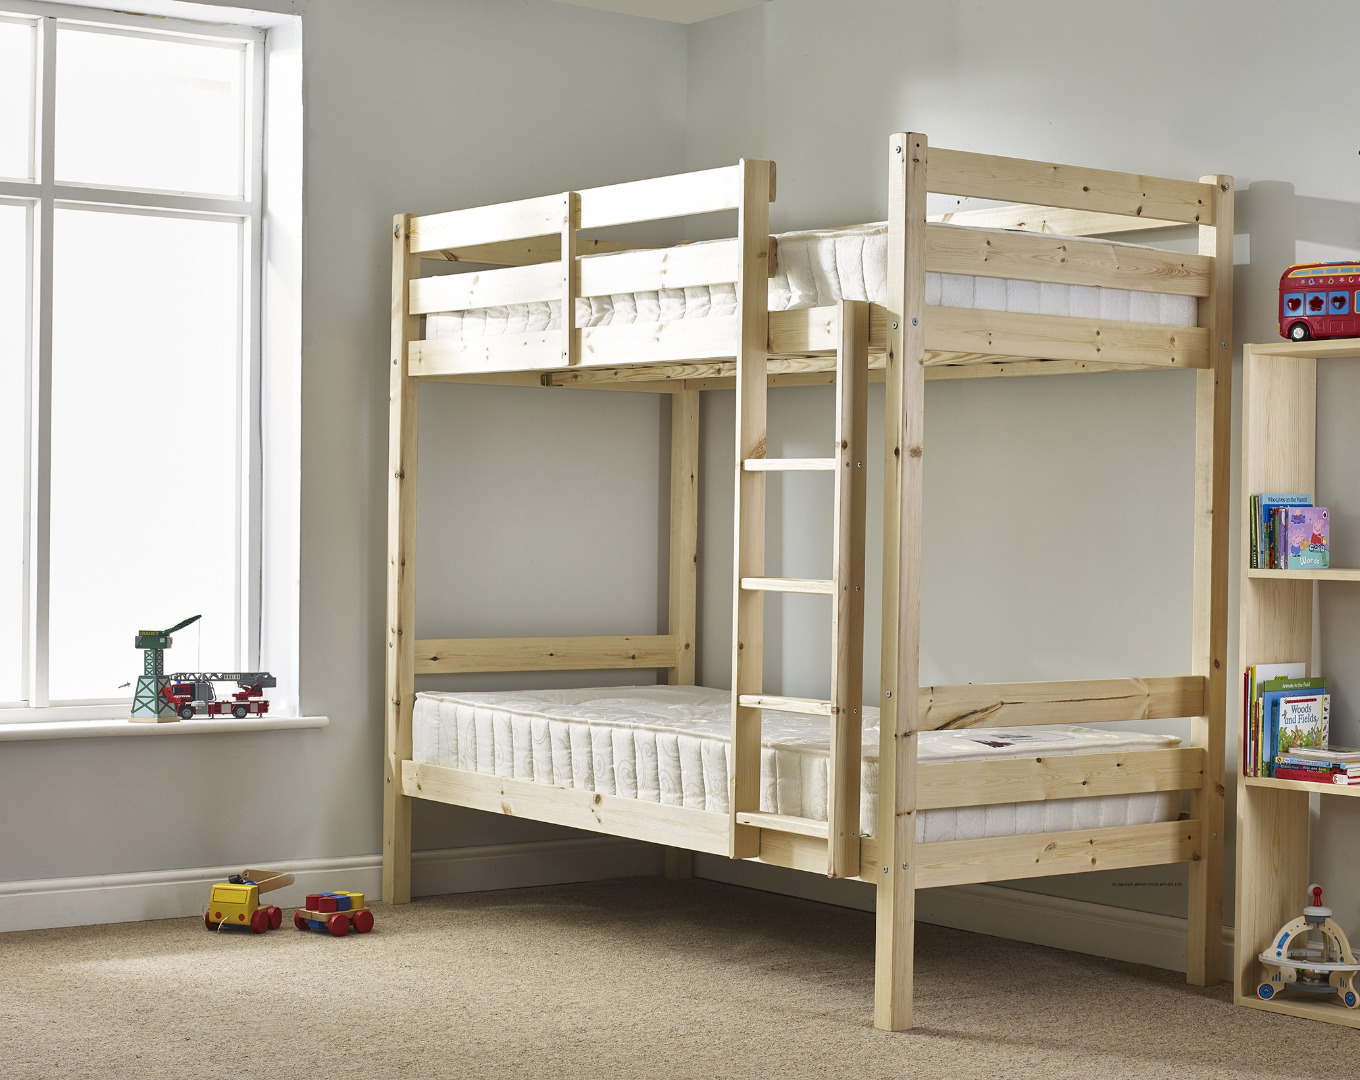 Everest 2ft 6 small single heavy duty solid pine high bunk bed for Unfinished loft bed